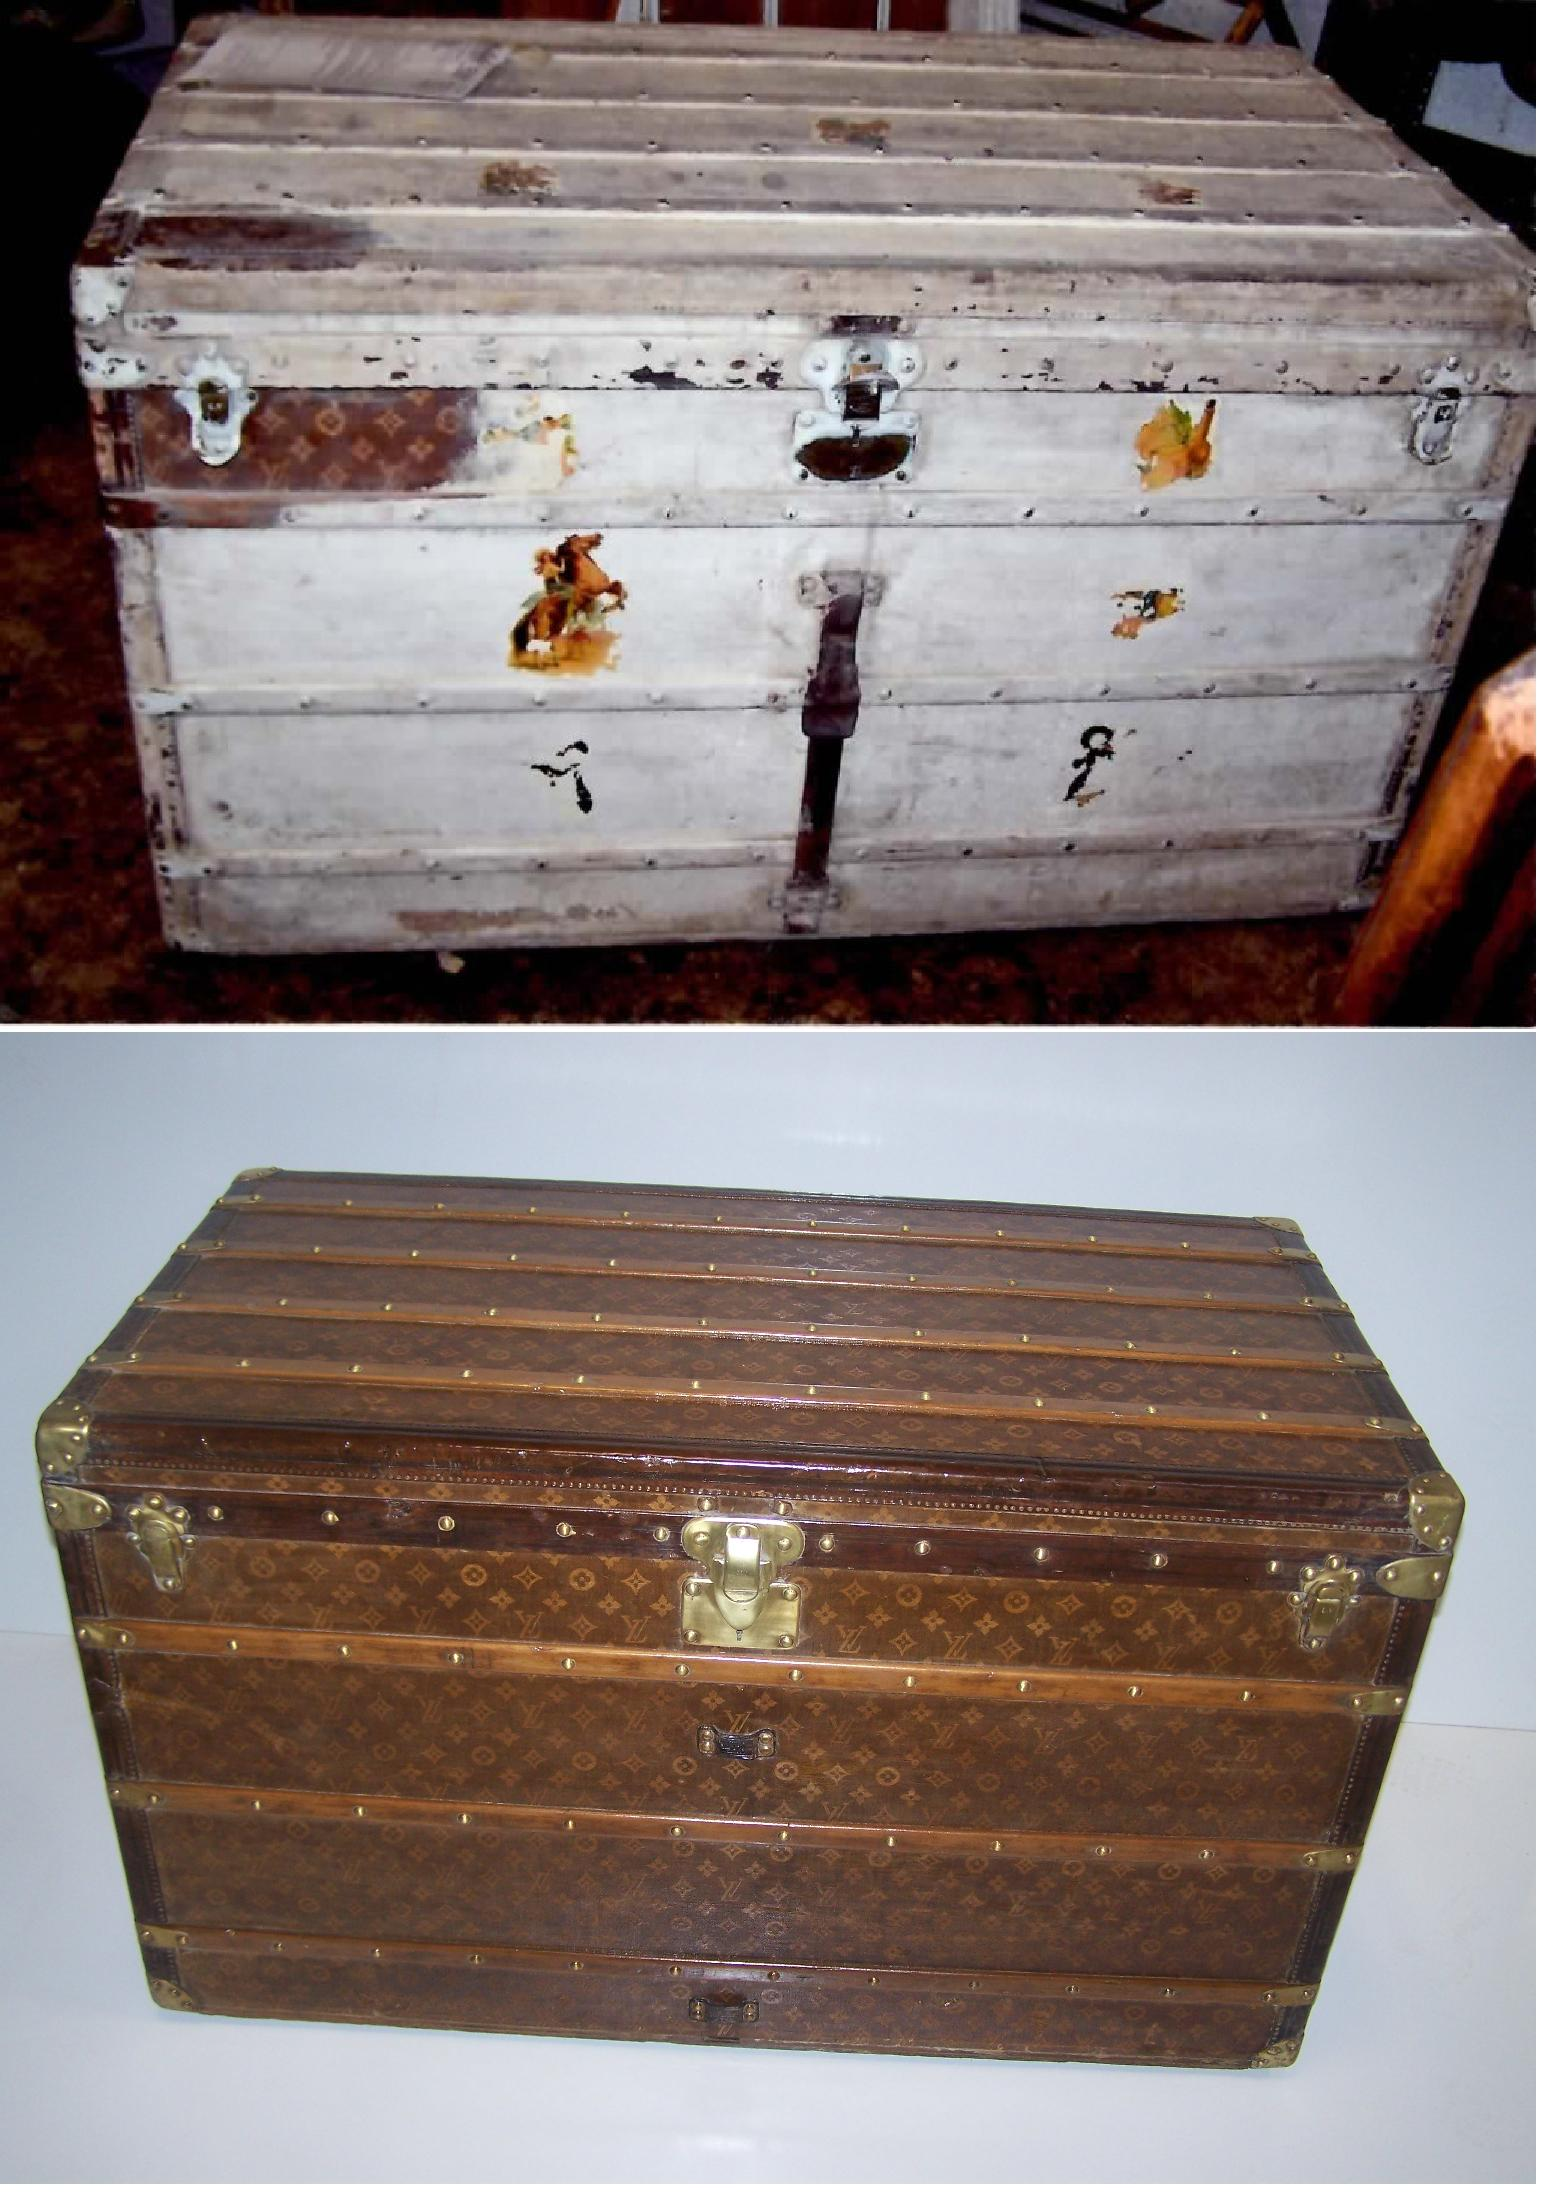 Louis Vuitton Trunk This Item Was Purchased By A Milwaukee Resident At Auction For $7 50 It Is Now Valued Over $10,000